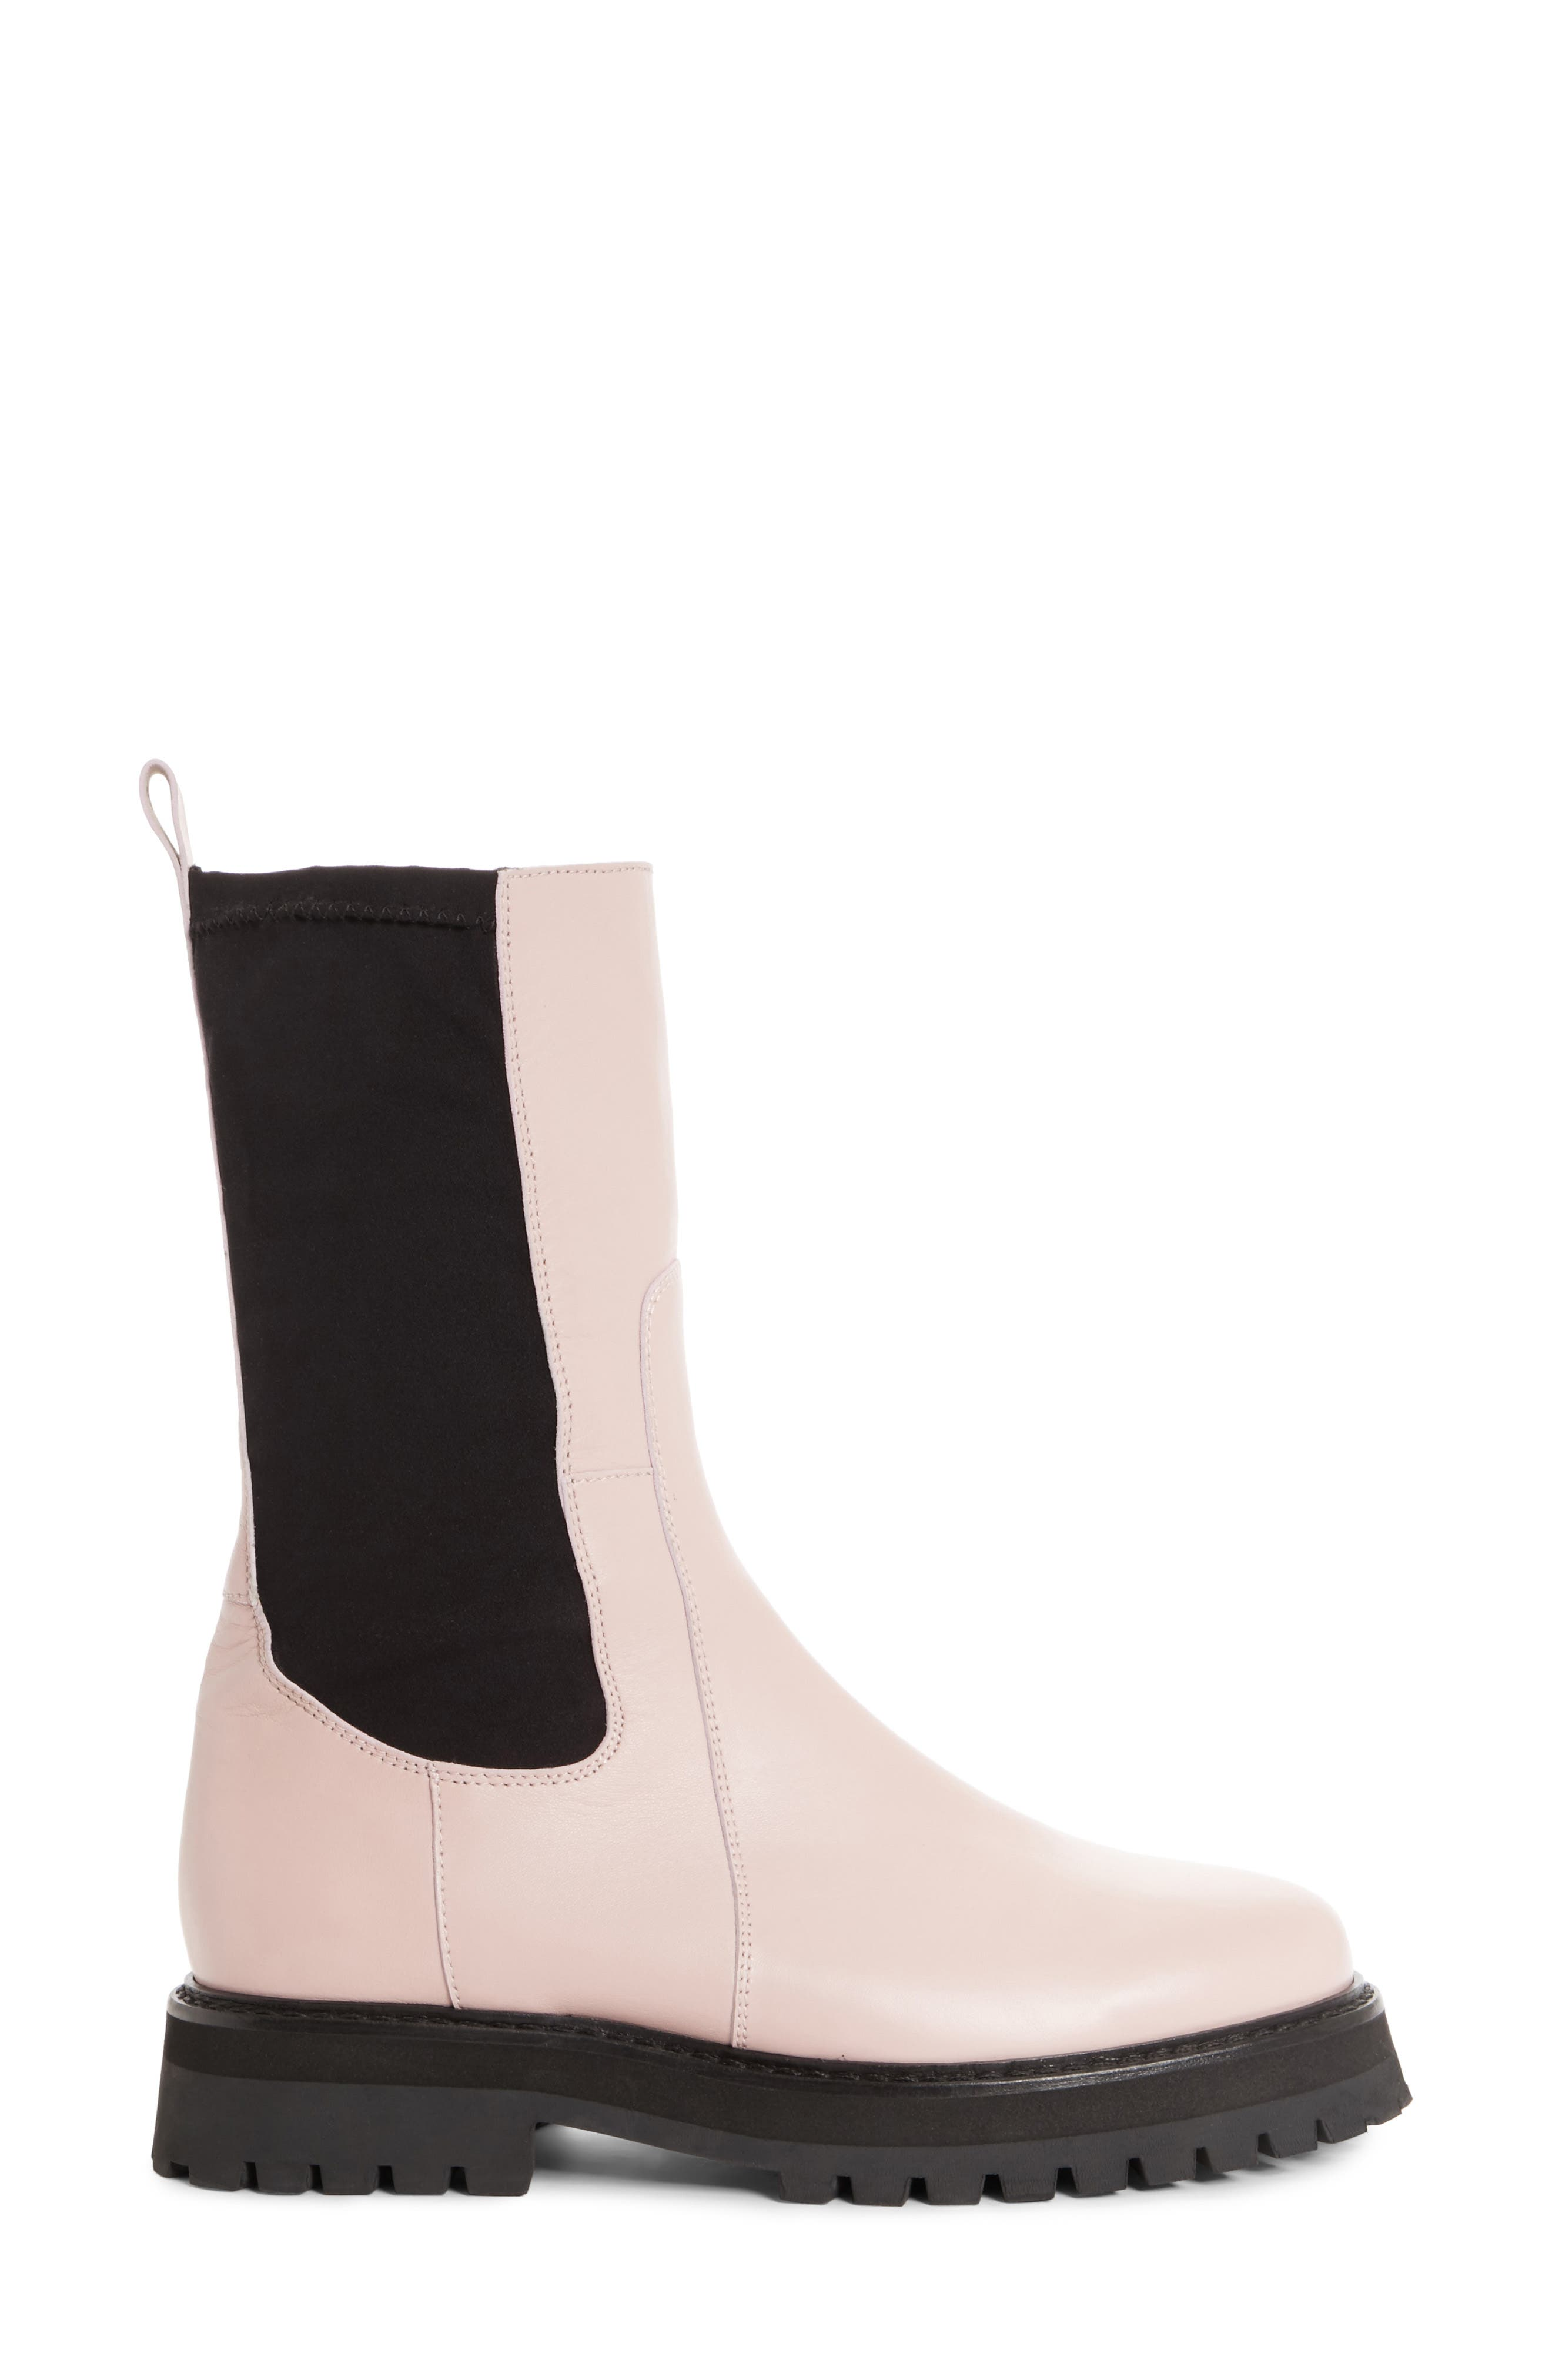 Marques'Almeida Army Boot,                             Alternate thumbnail 3, color,                             Pale Pink